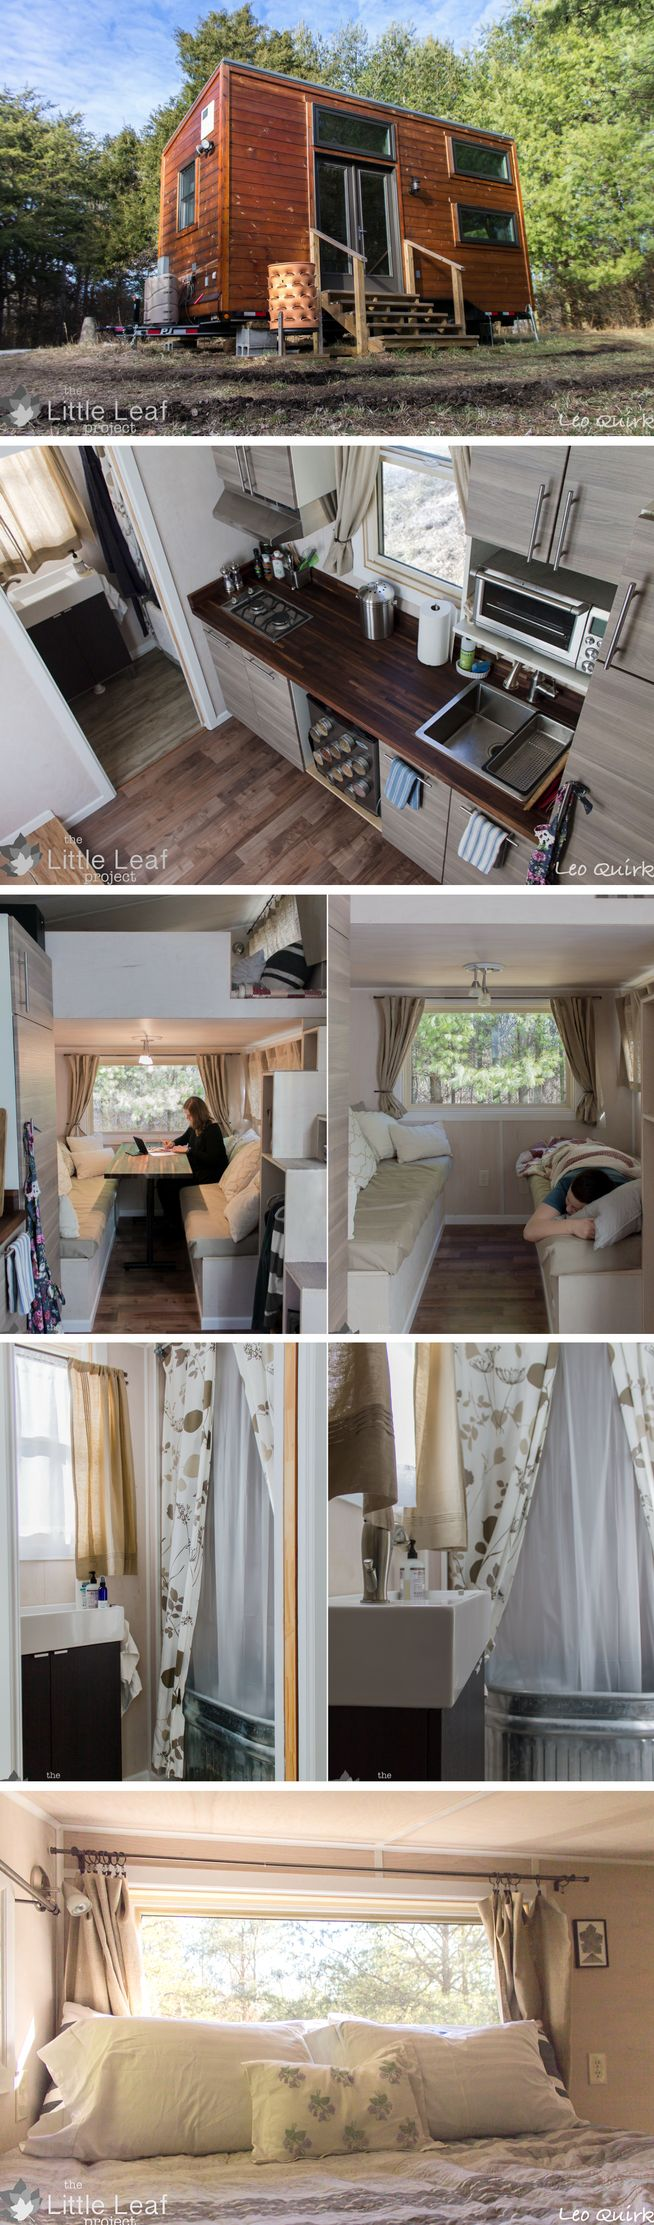 The Little Leaf Project Tiny House. A 220 Sq Ft Home, I Love Tiny Homes For  Their Innovative Design!